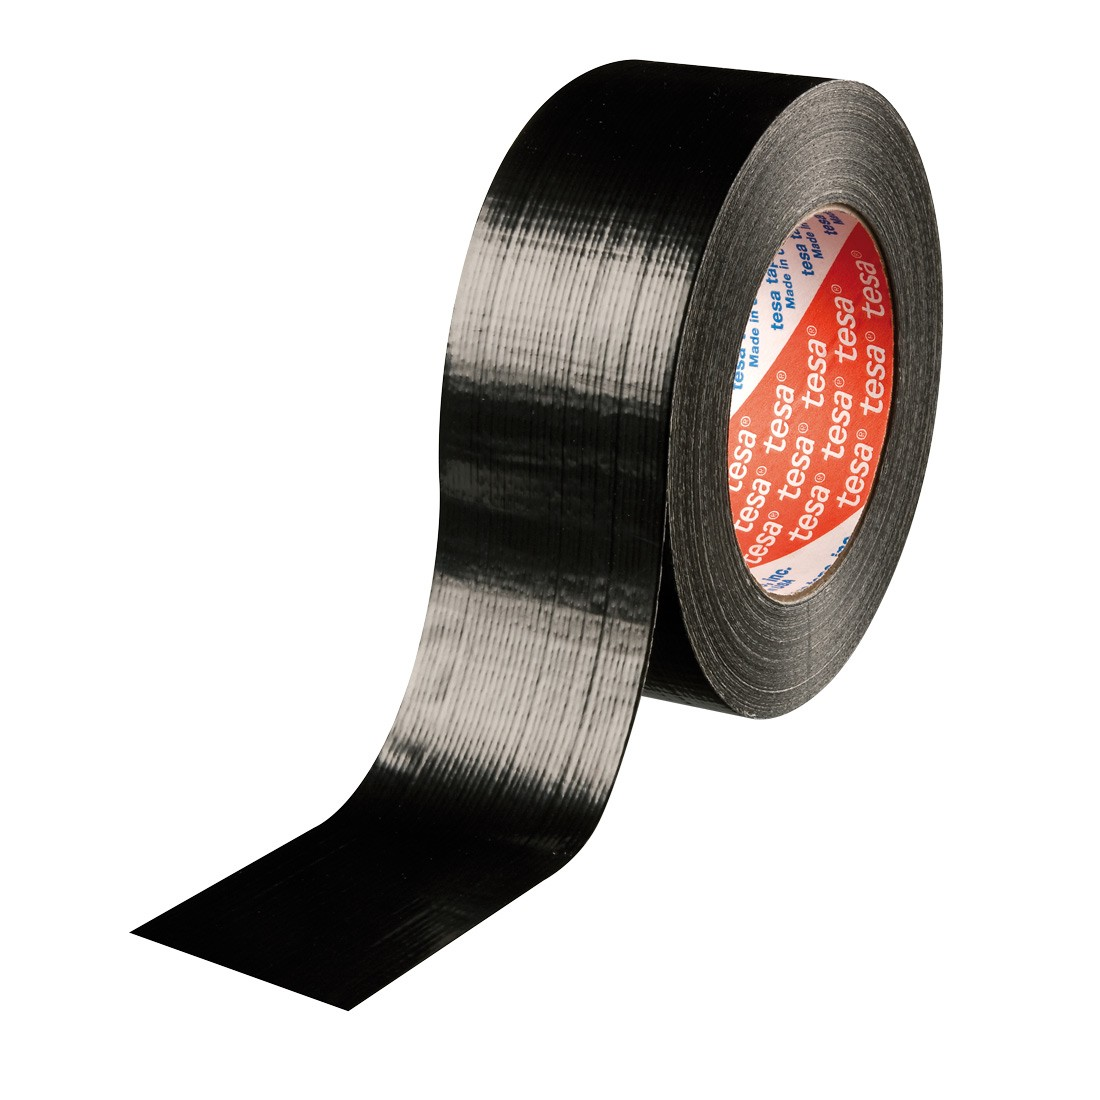 Tesa Standard Duct Tape Black 4613 Tapes Accessories